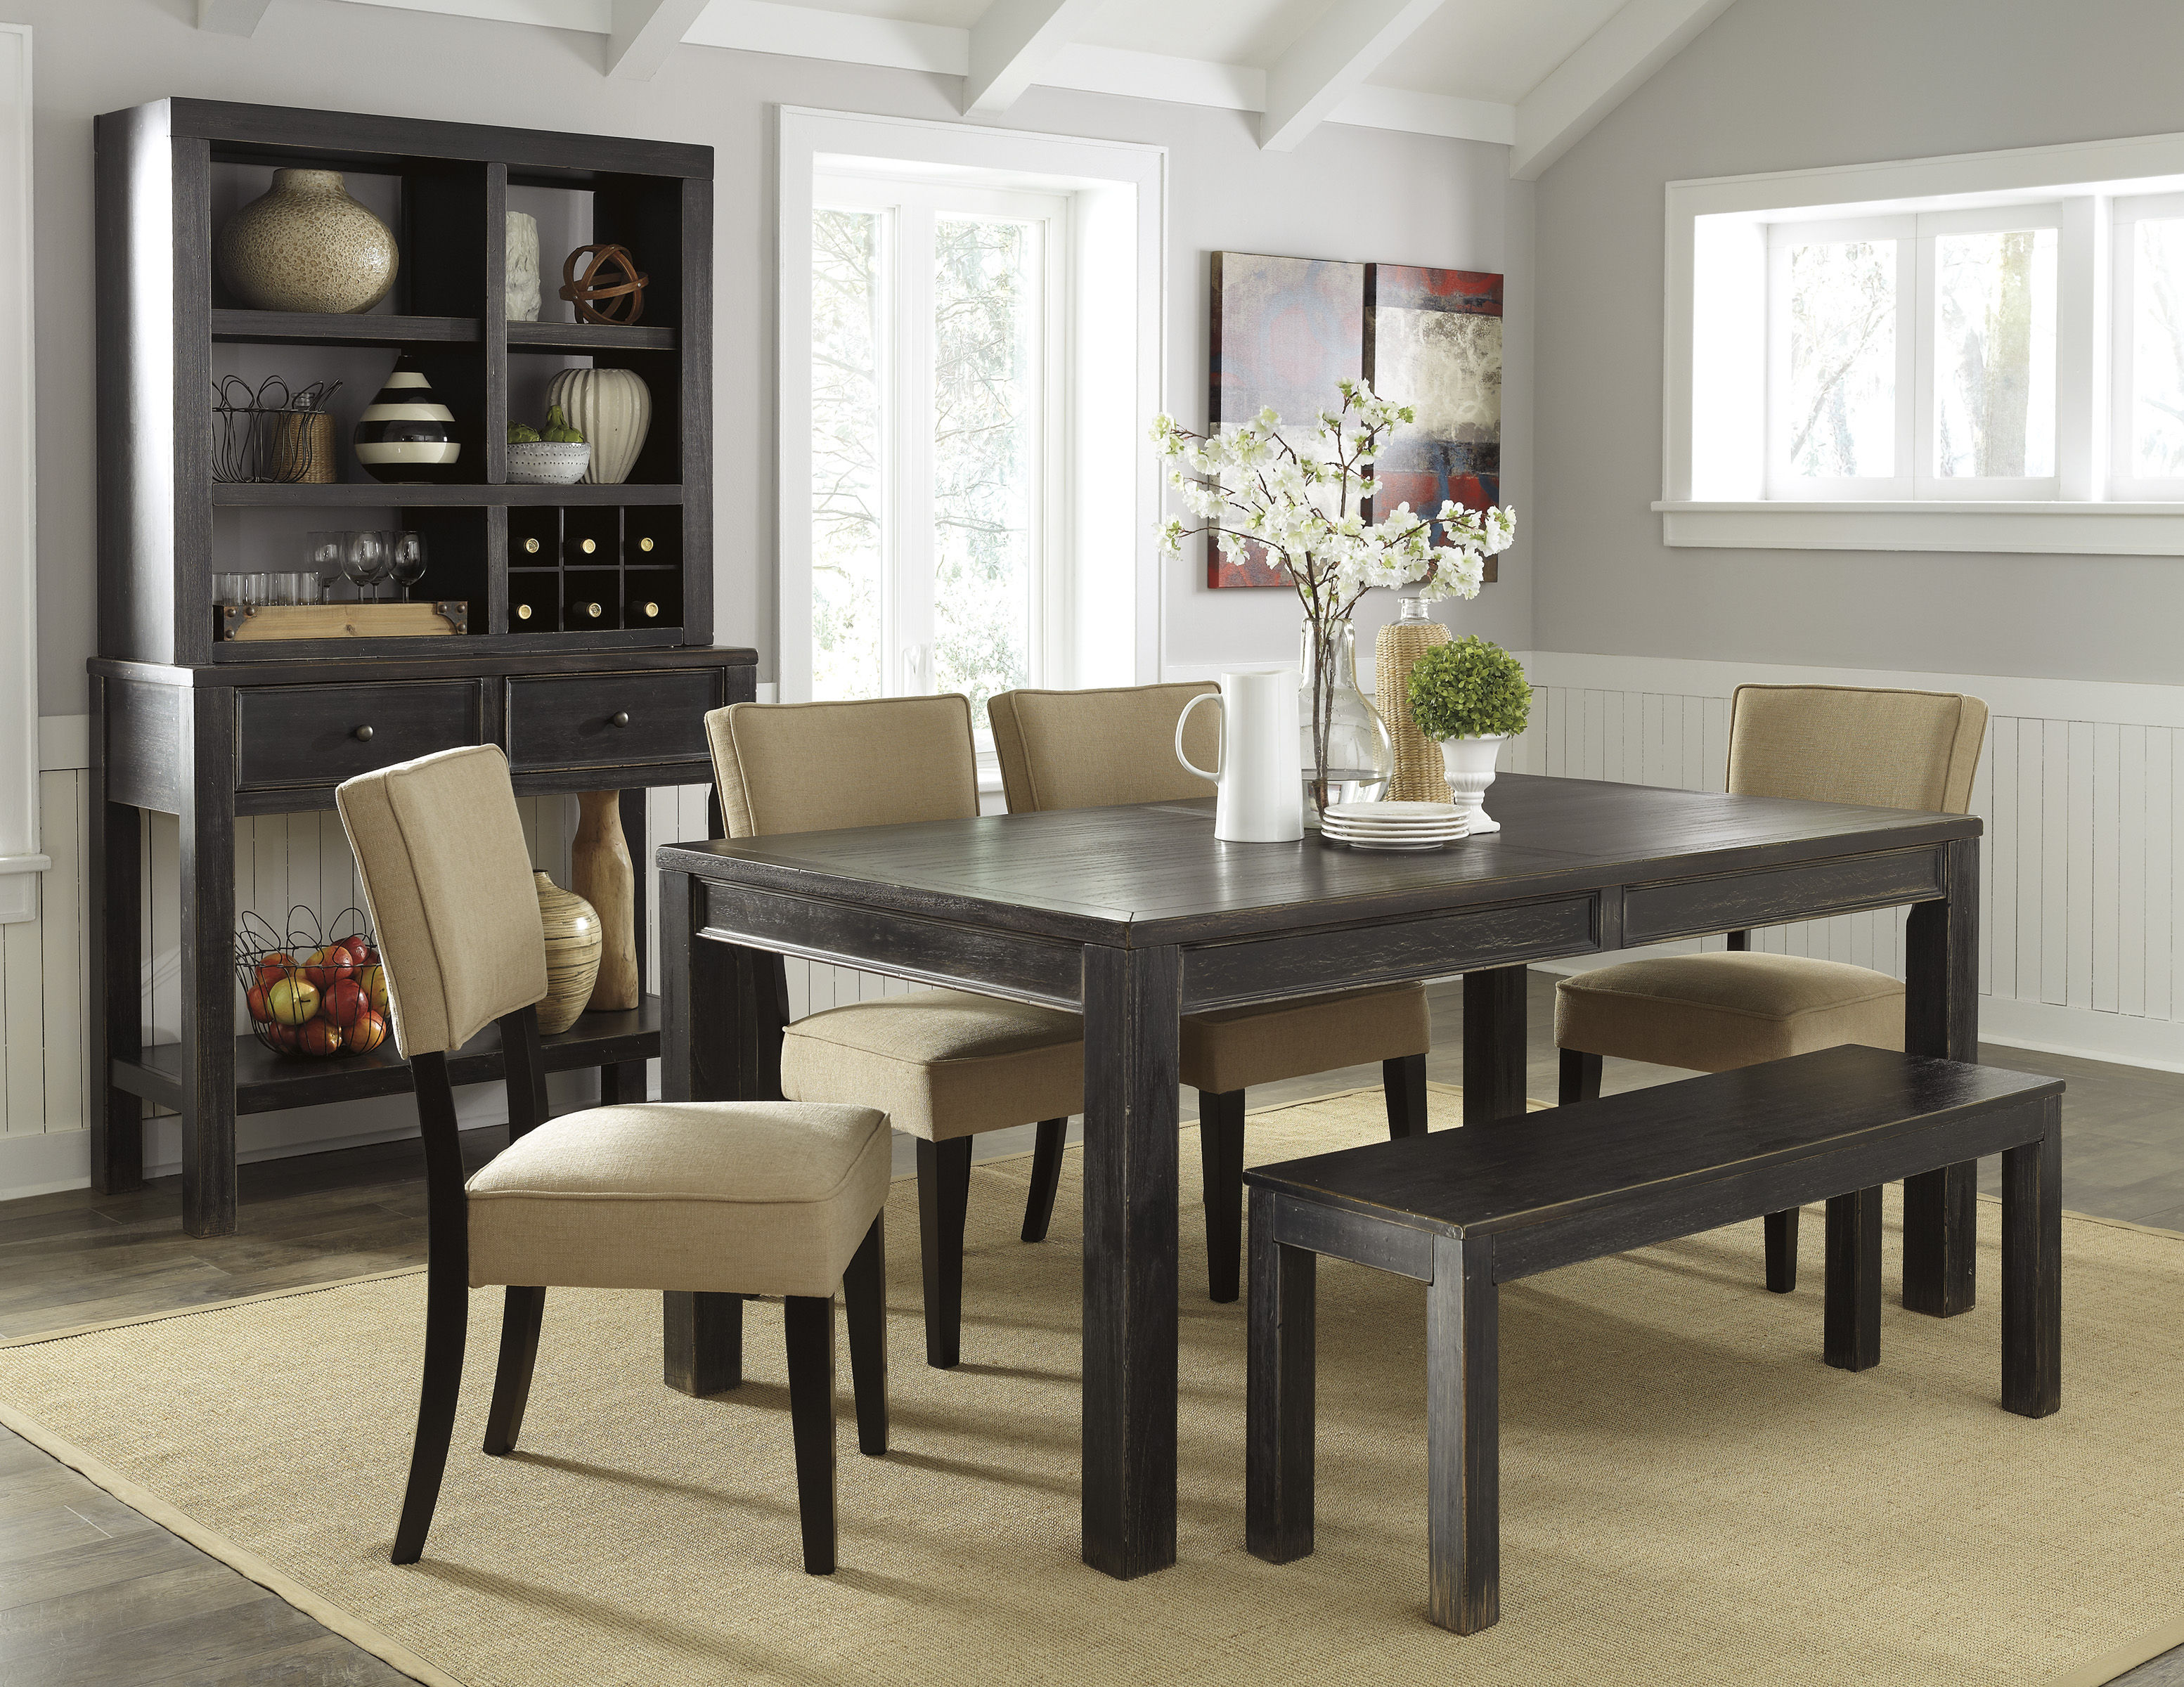 Gavelston urbanology black beige wood 6pc dining room set for Black dining room set